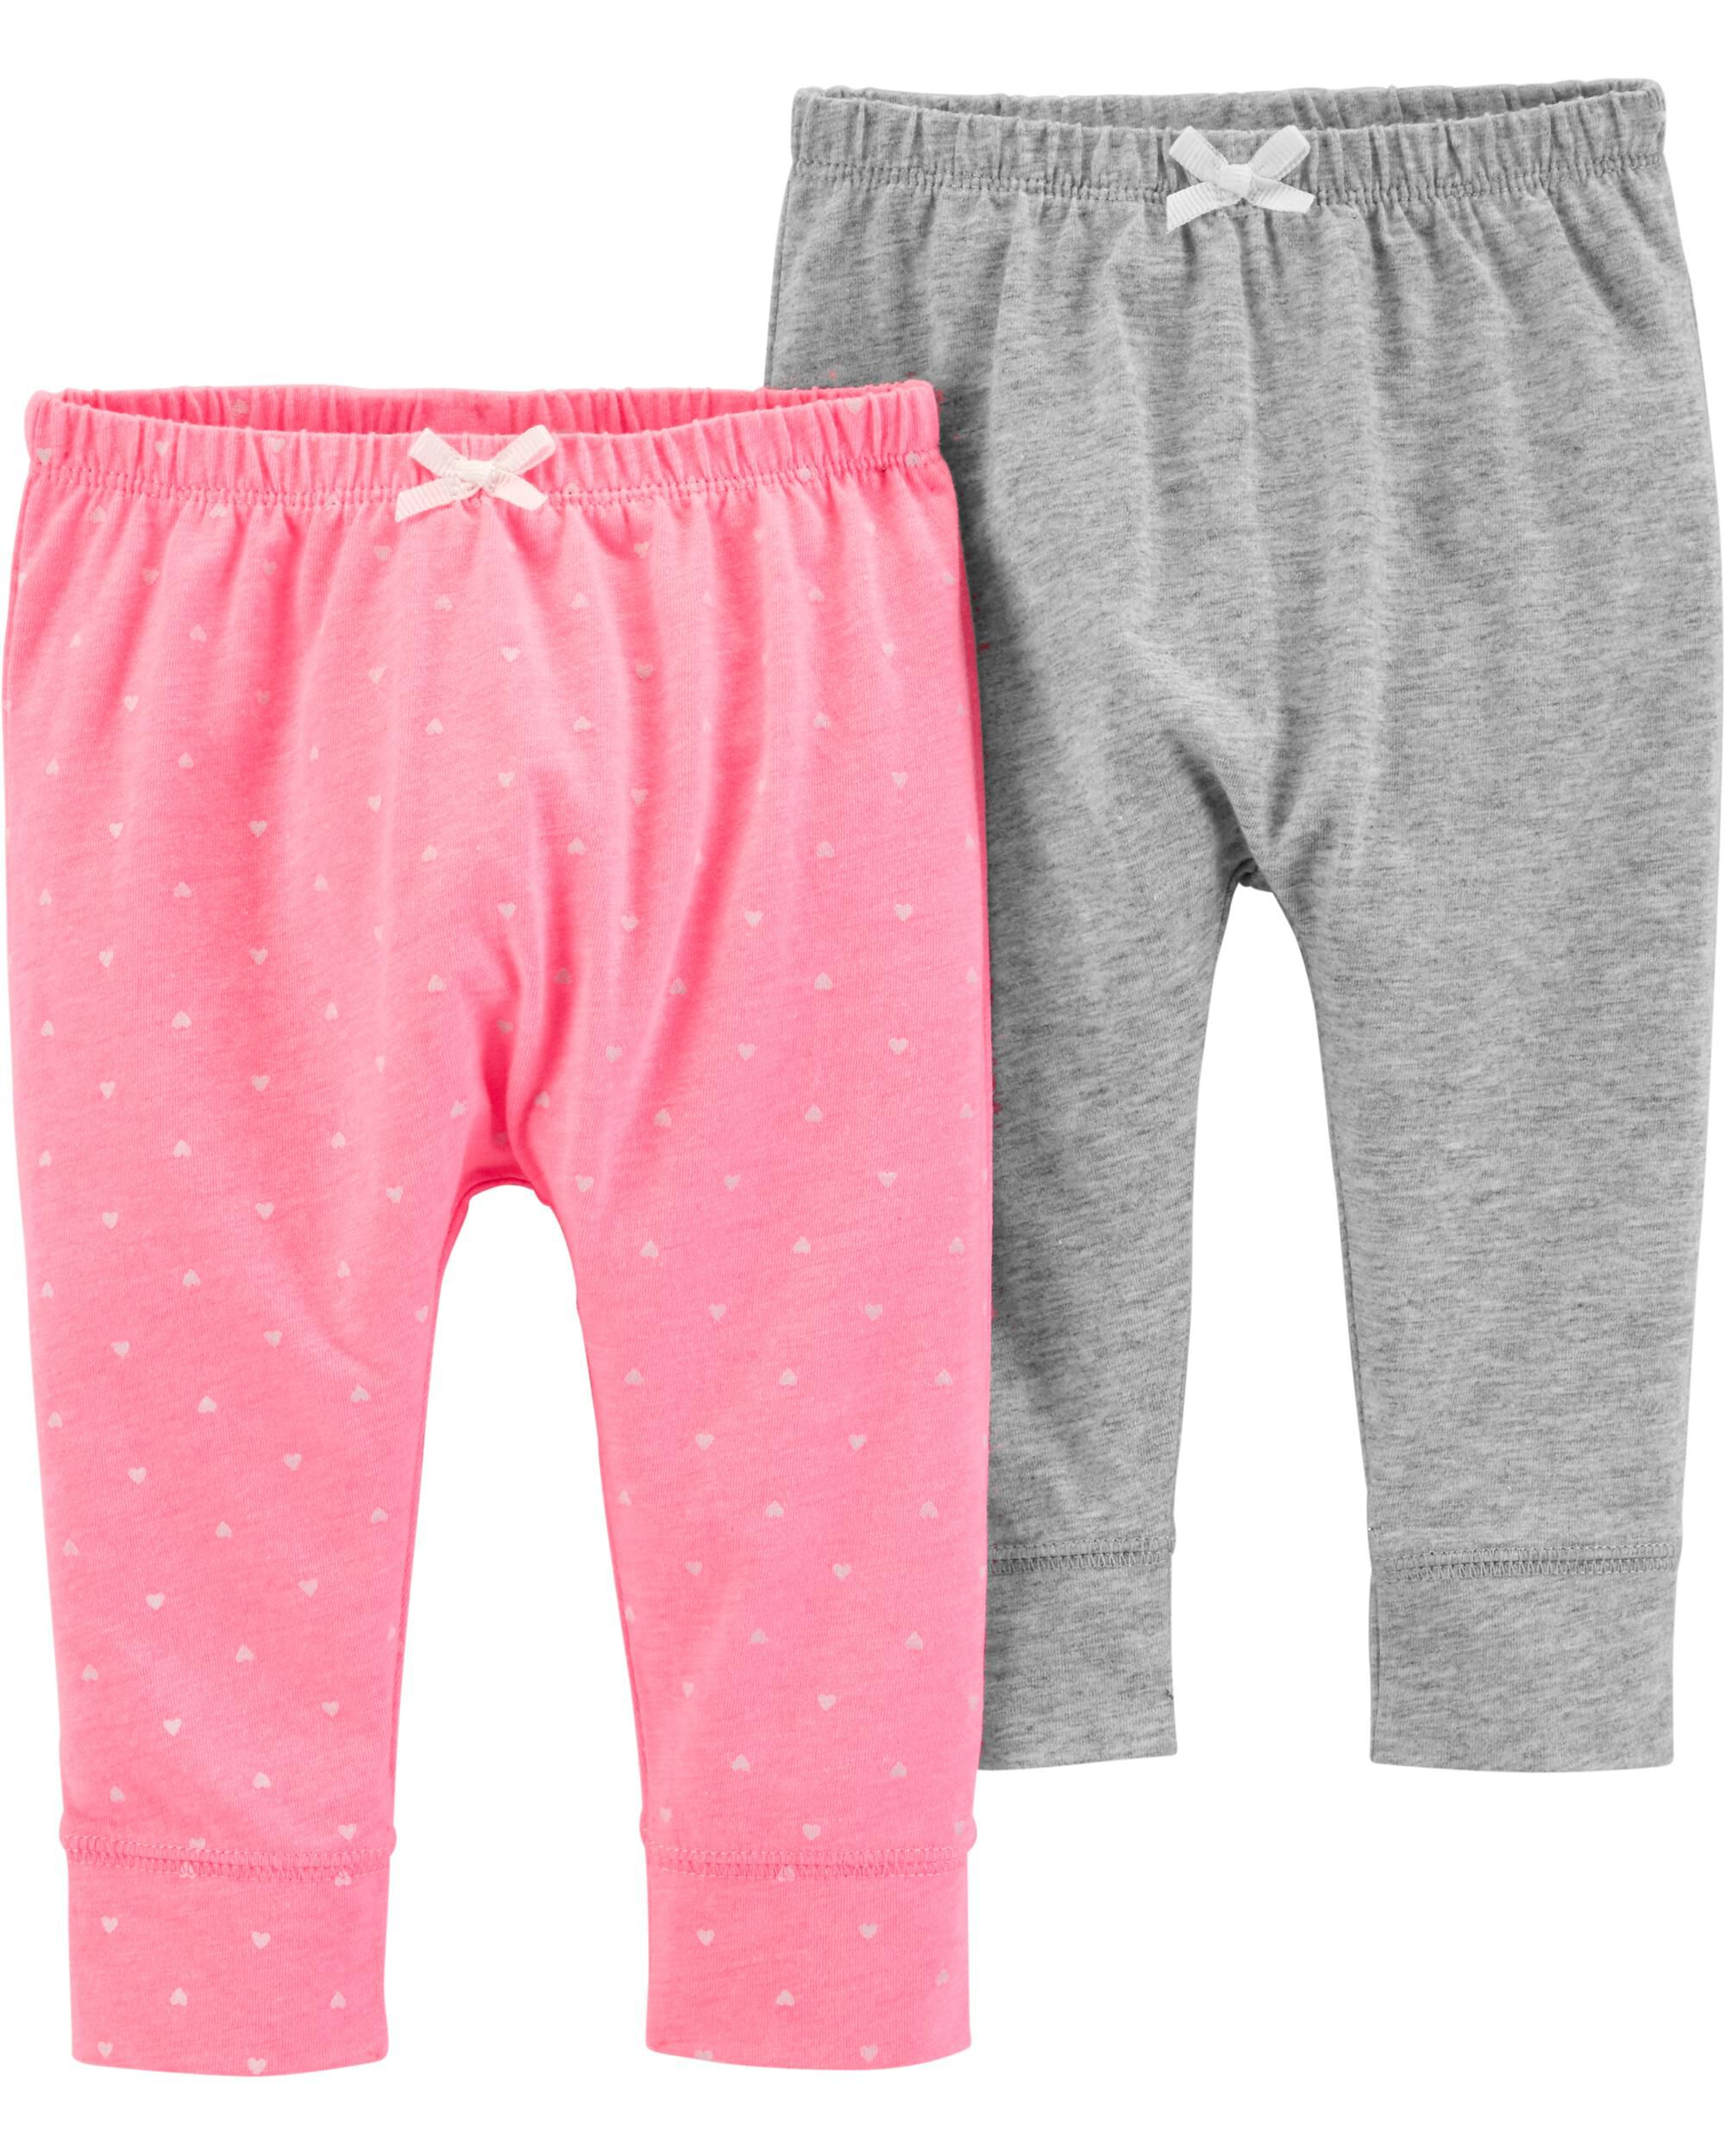 1c78c4acd Baby Girl 2-Pack Bubble Pants | Carters.com